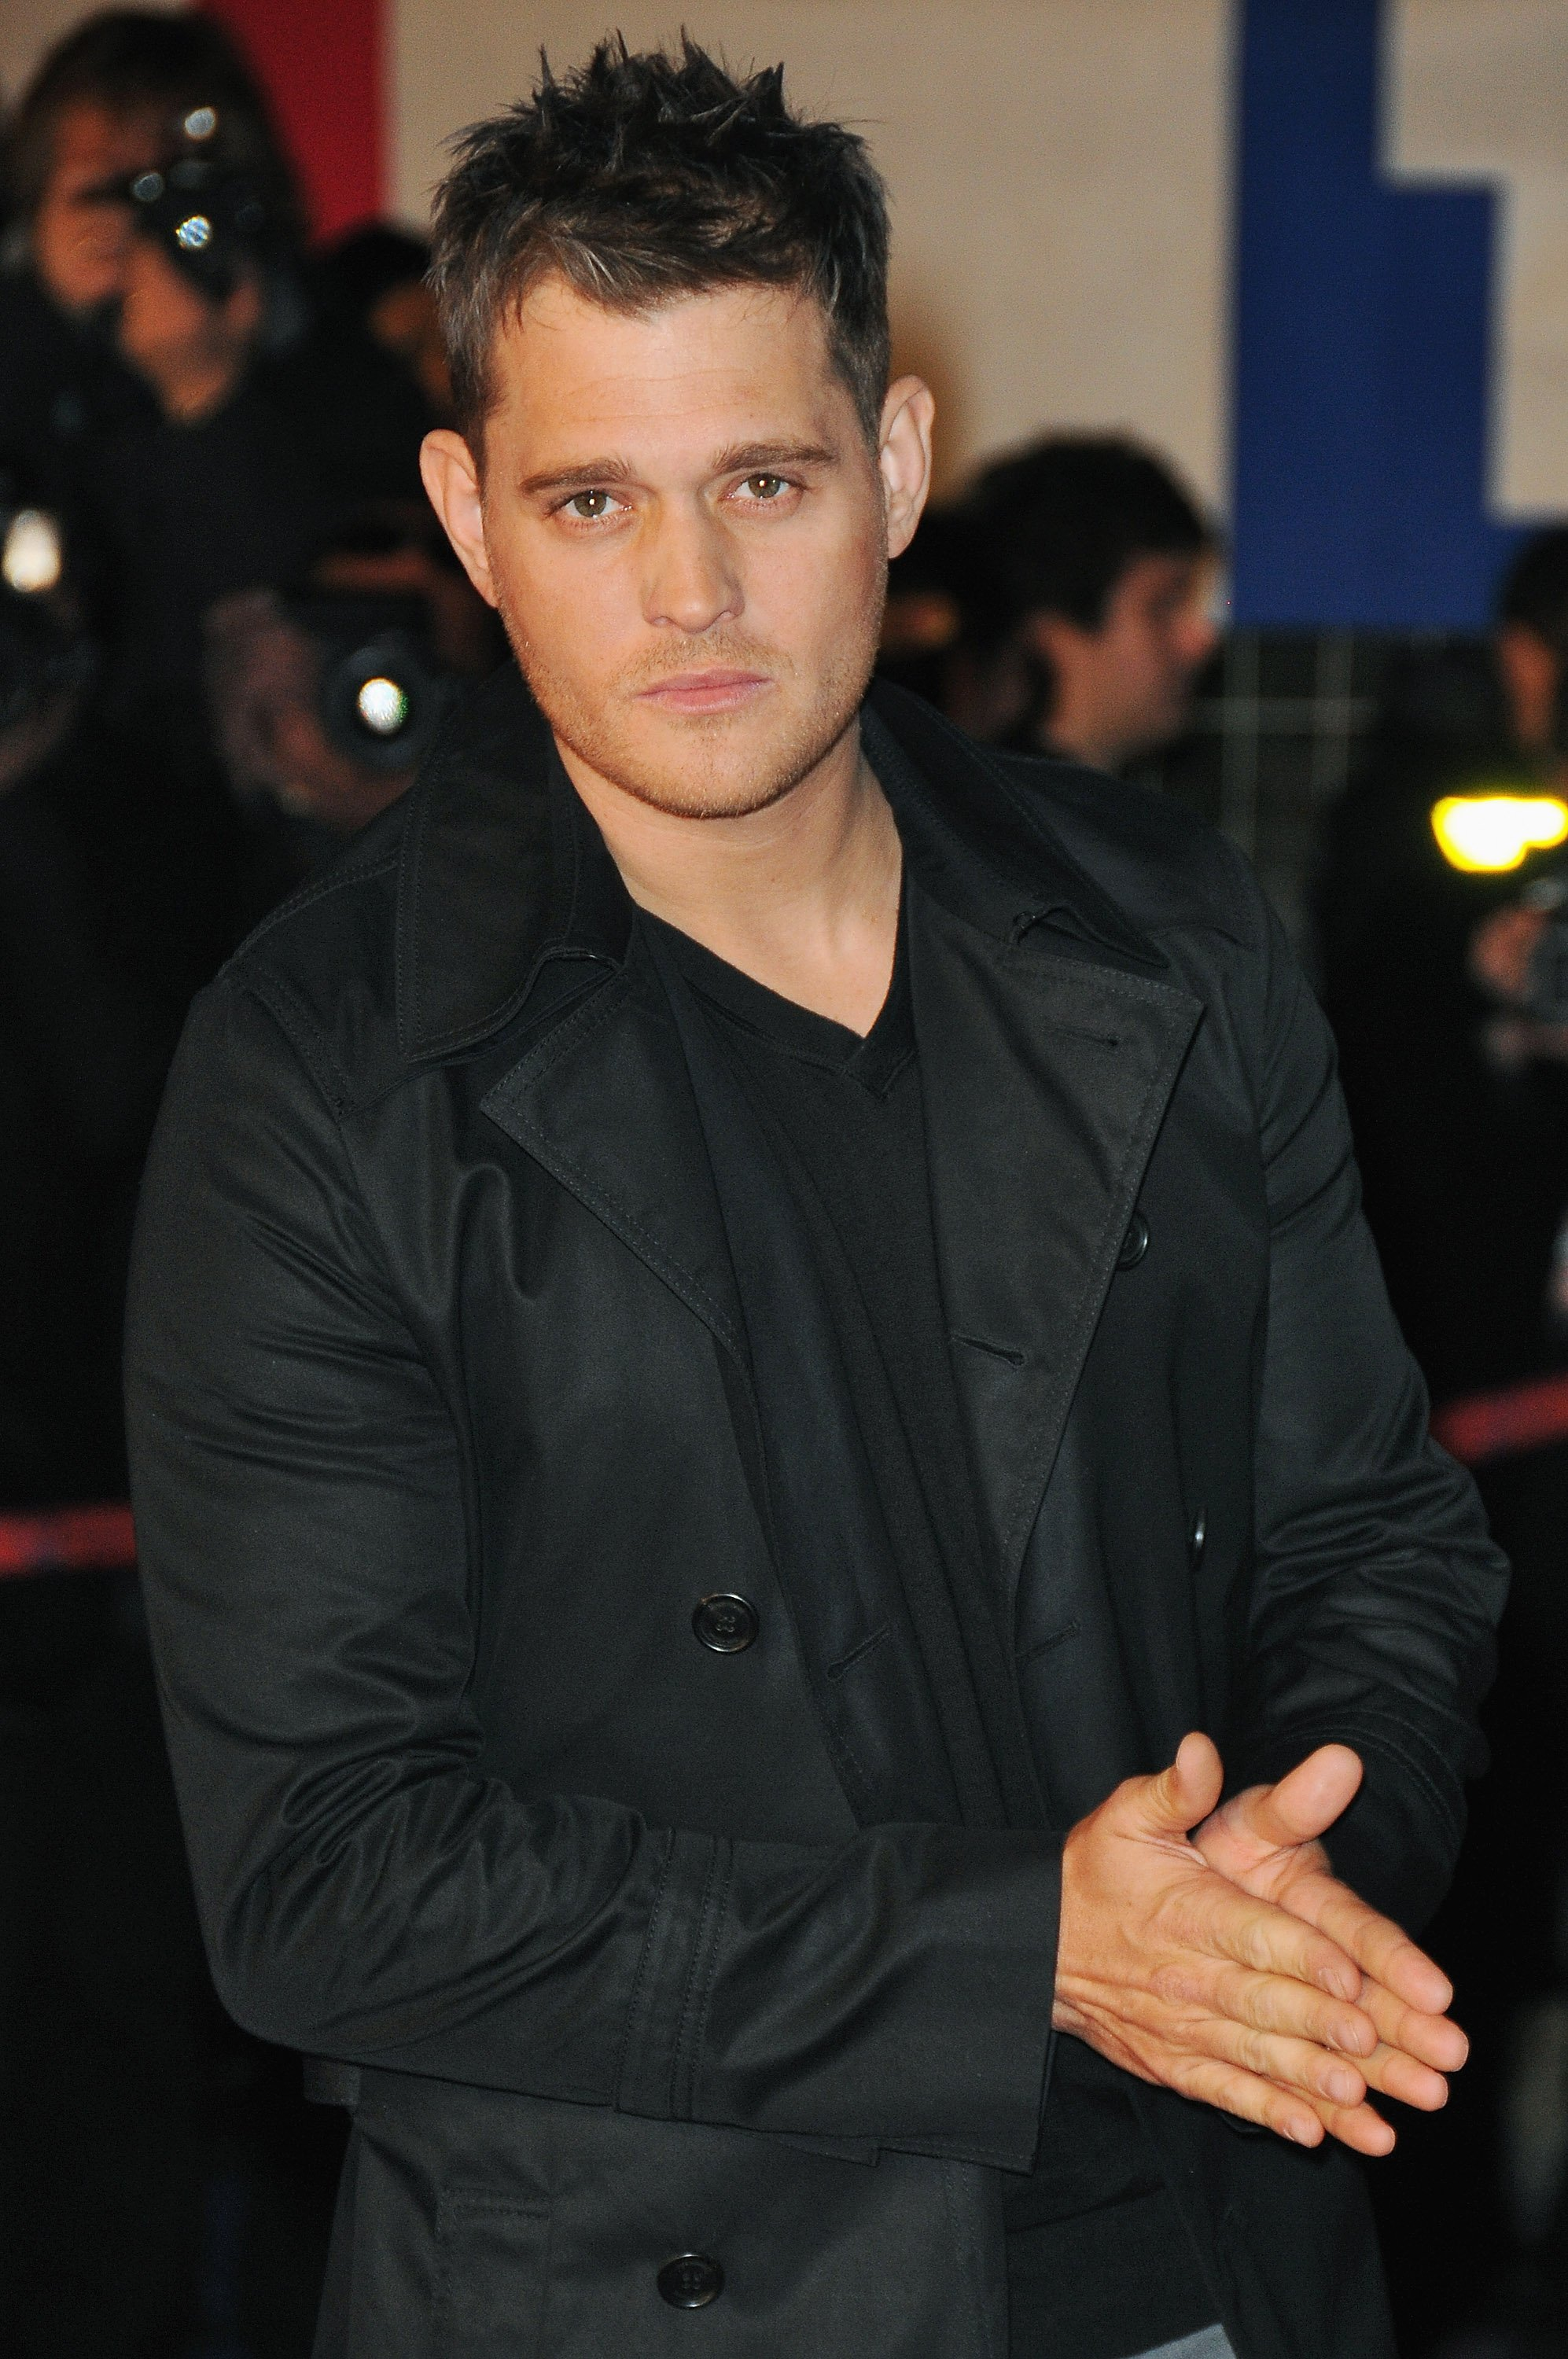 Pop star Michael Buble attends the NRJ Music Awards 2010 at Palais des Festivals on January 23, 2010 in Cannes, France | Photo: Getty Images